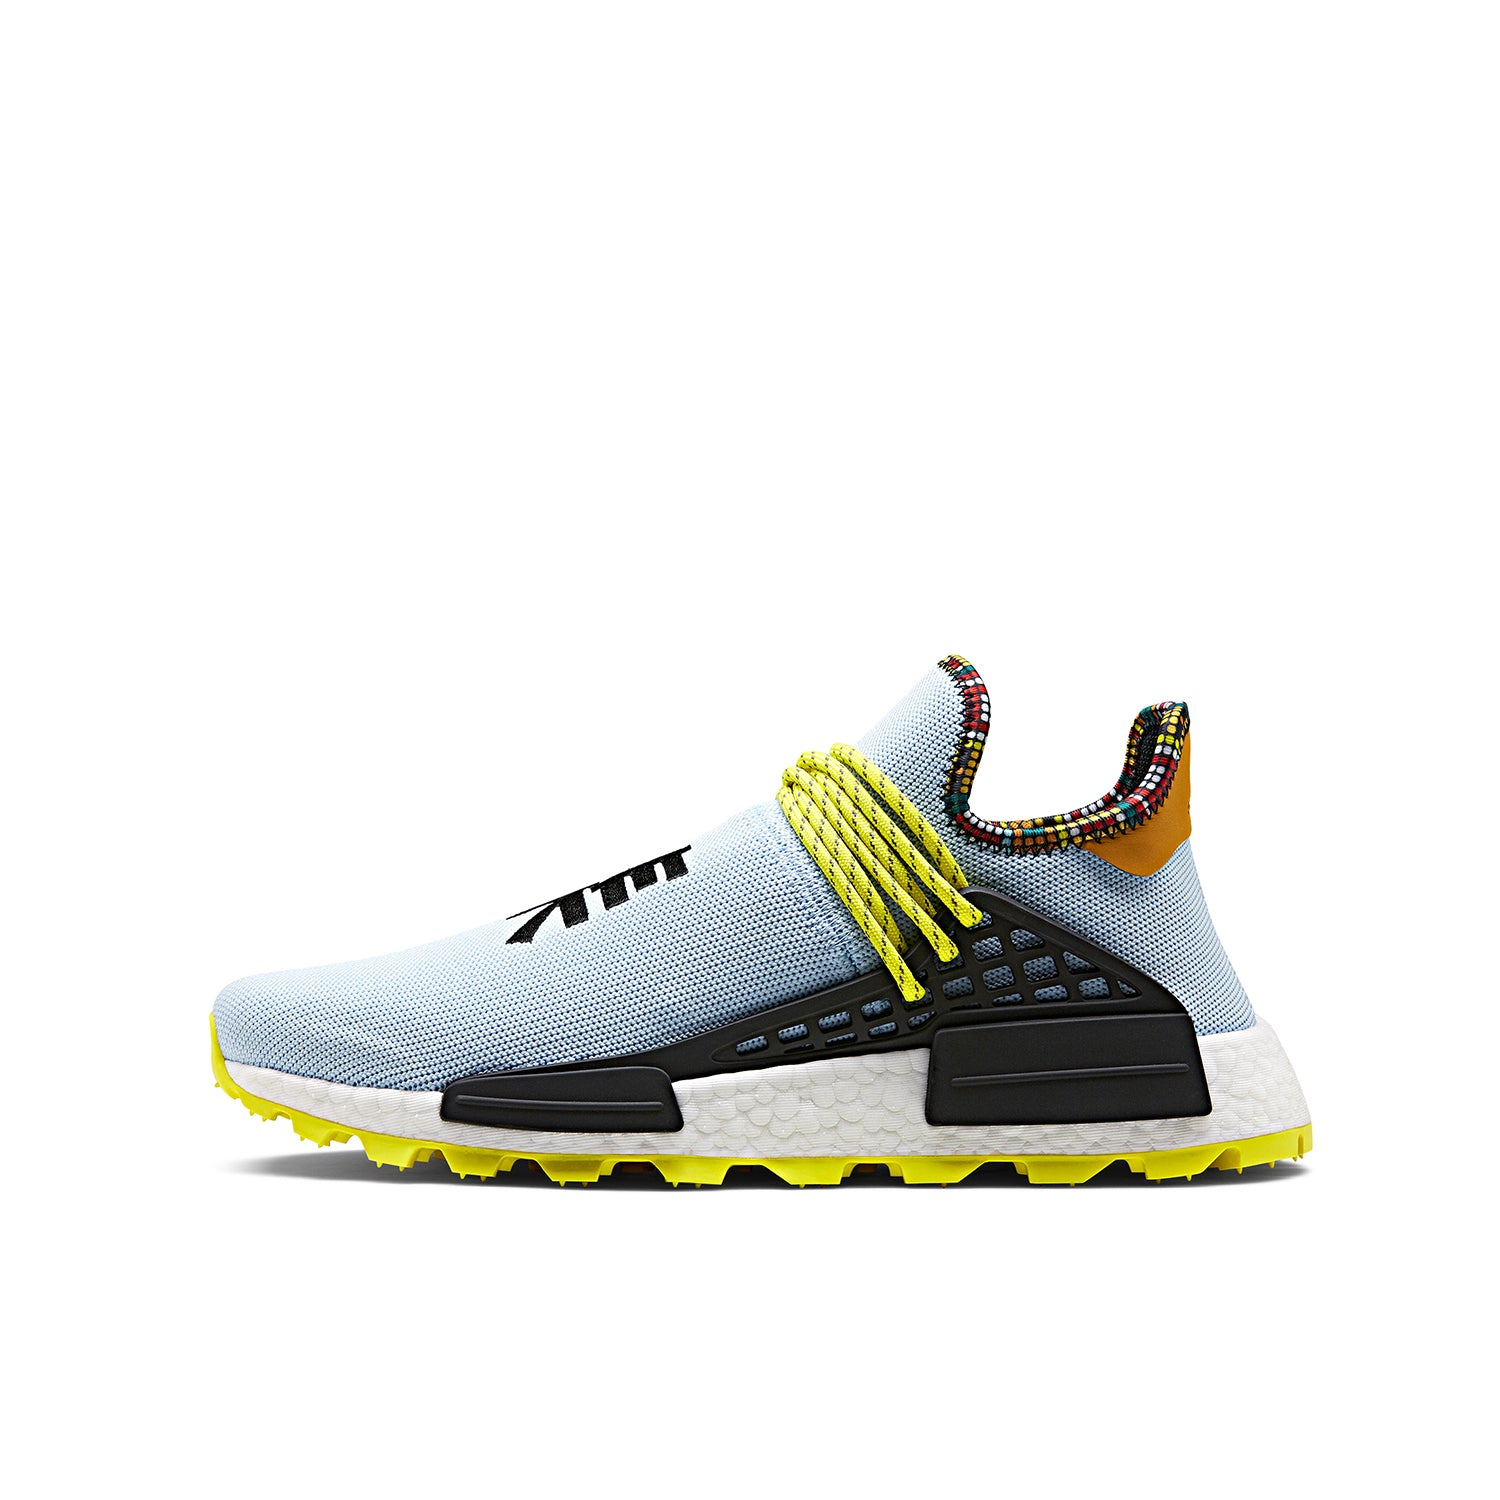 nouveau style b1be7 0bd50 adidas Originals x Pharrell Williams 'INSPIRATION' Solar HU NMD Aero Blue